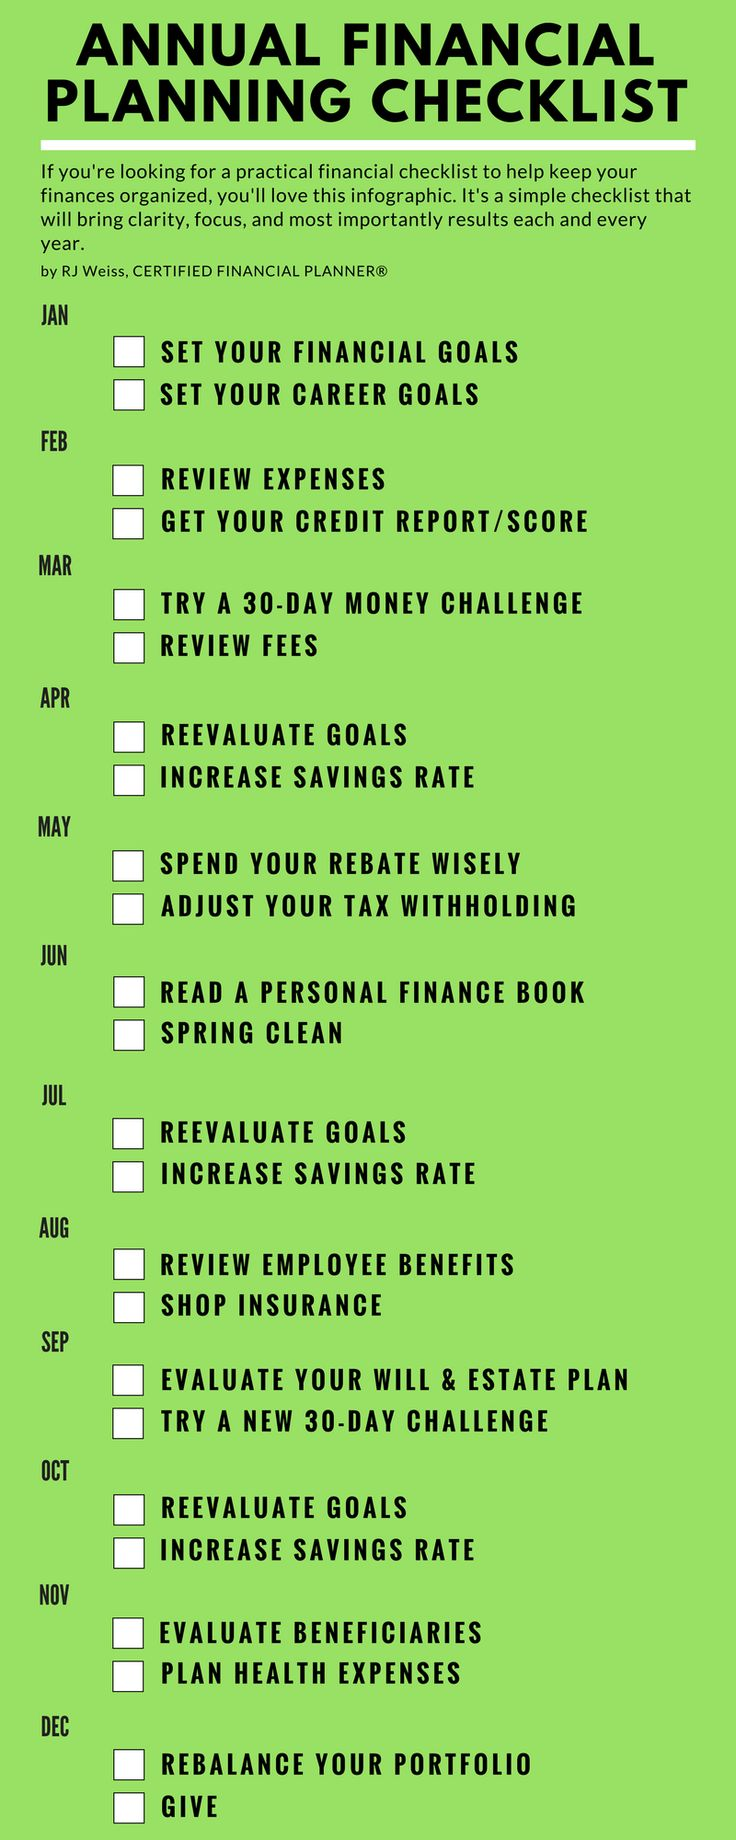 Annual money management printable. Tips, strategies, and tactics for managing your money, budgeting, and investing to maximize your net worth over a calendar year.